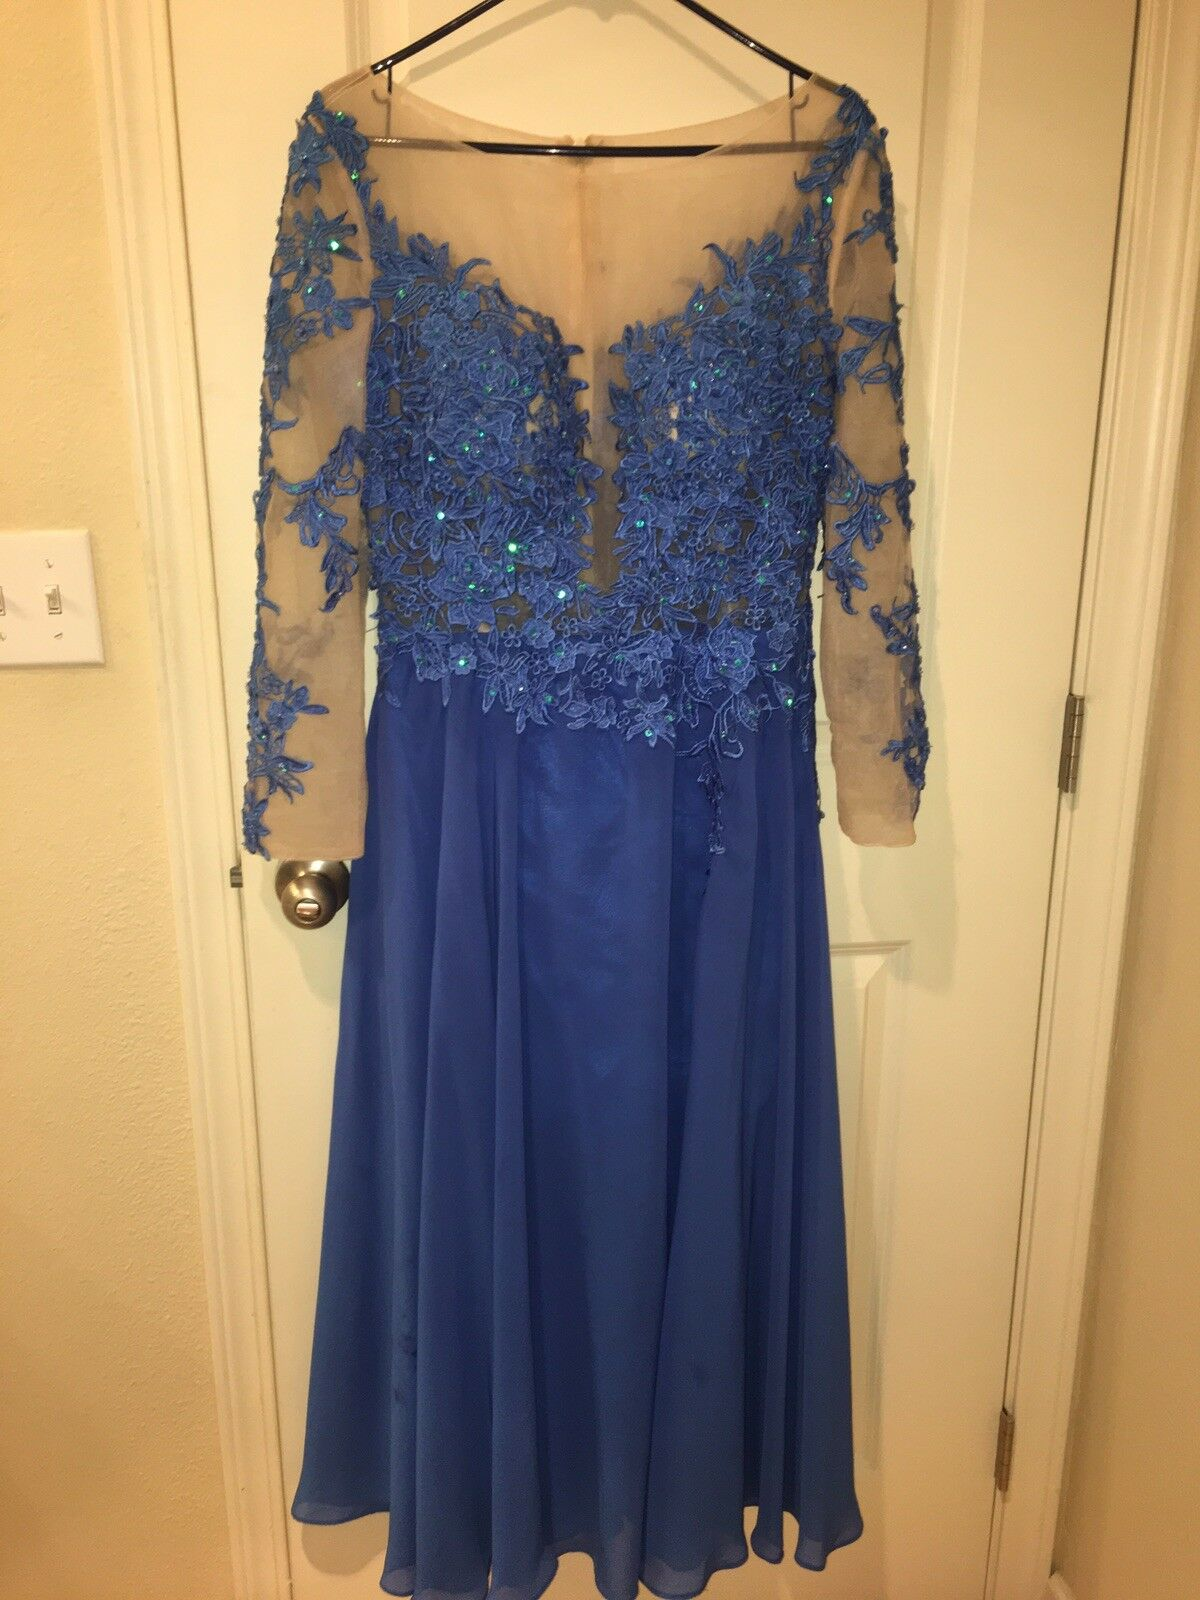 Women's formal blue prom dress with sleeves and lace detail!